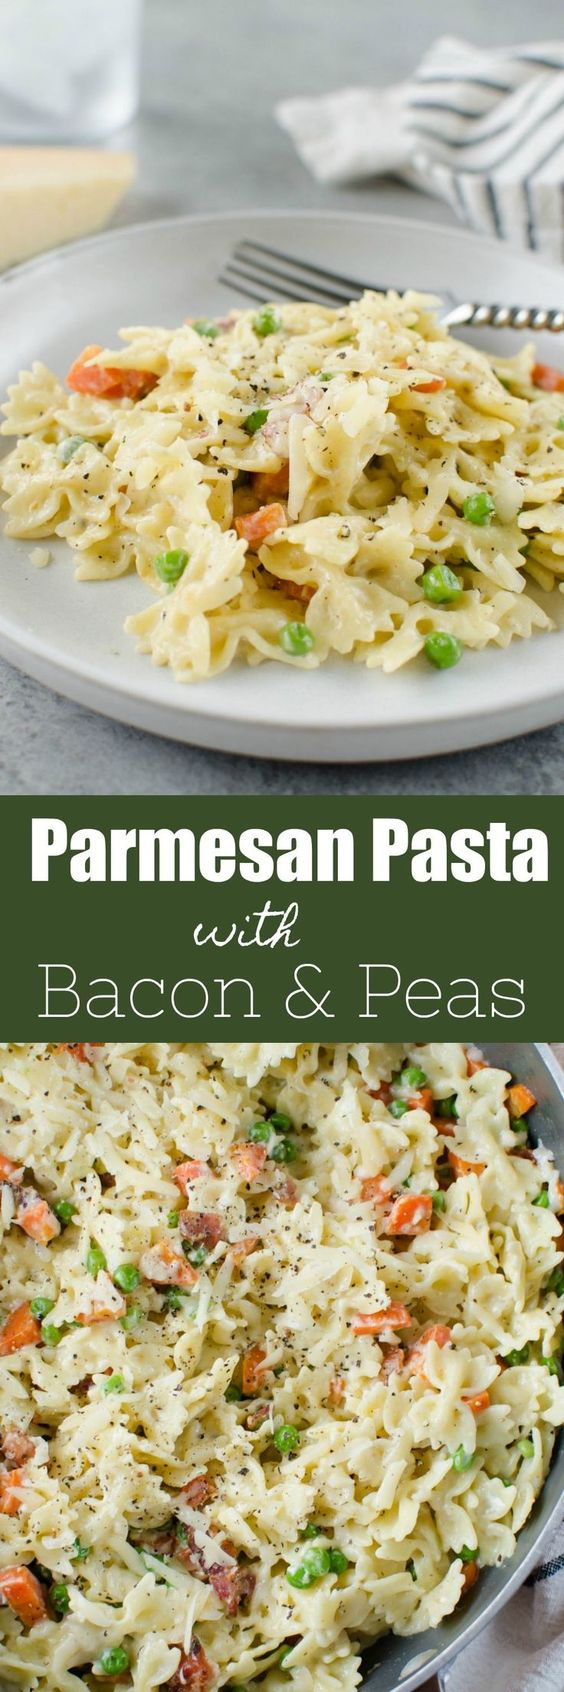 Parmesan-Pasta-with-Bacon-and-Peas